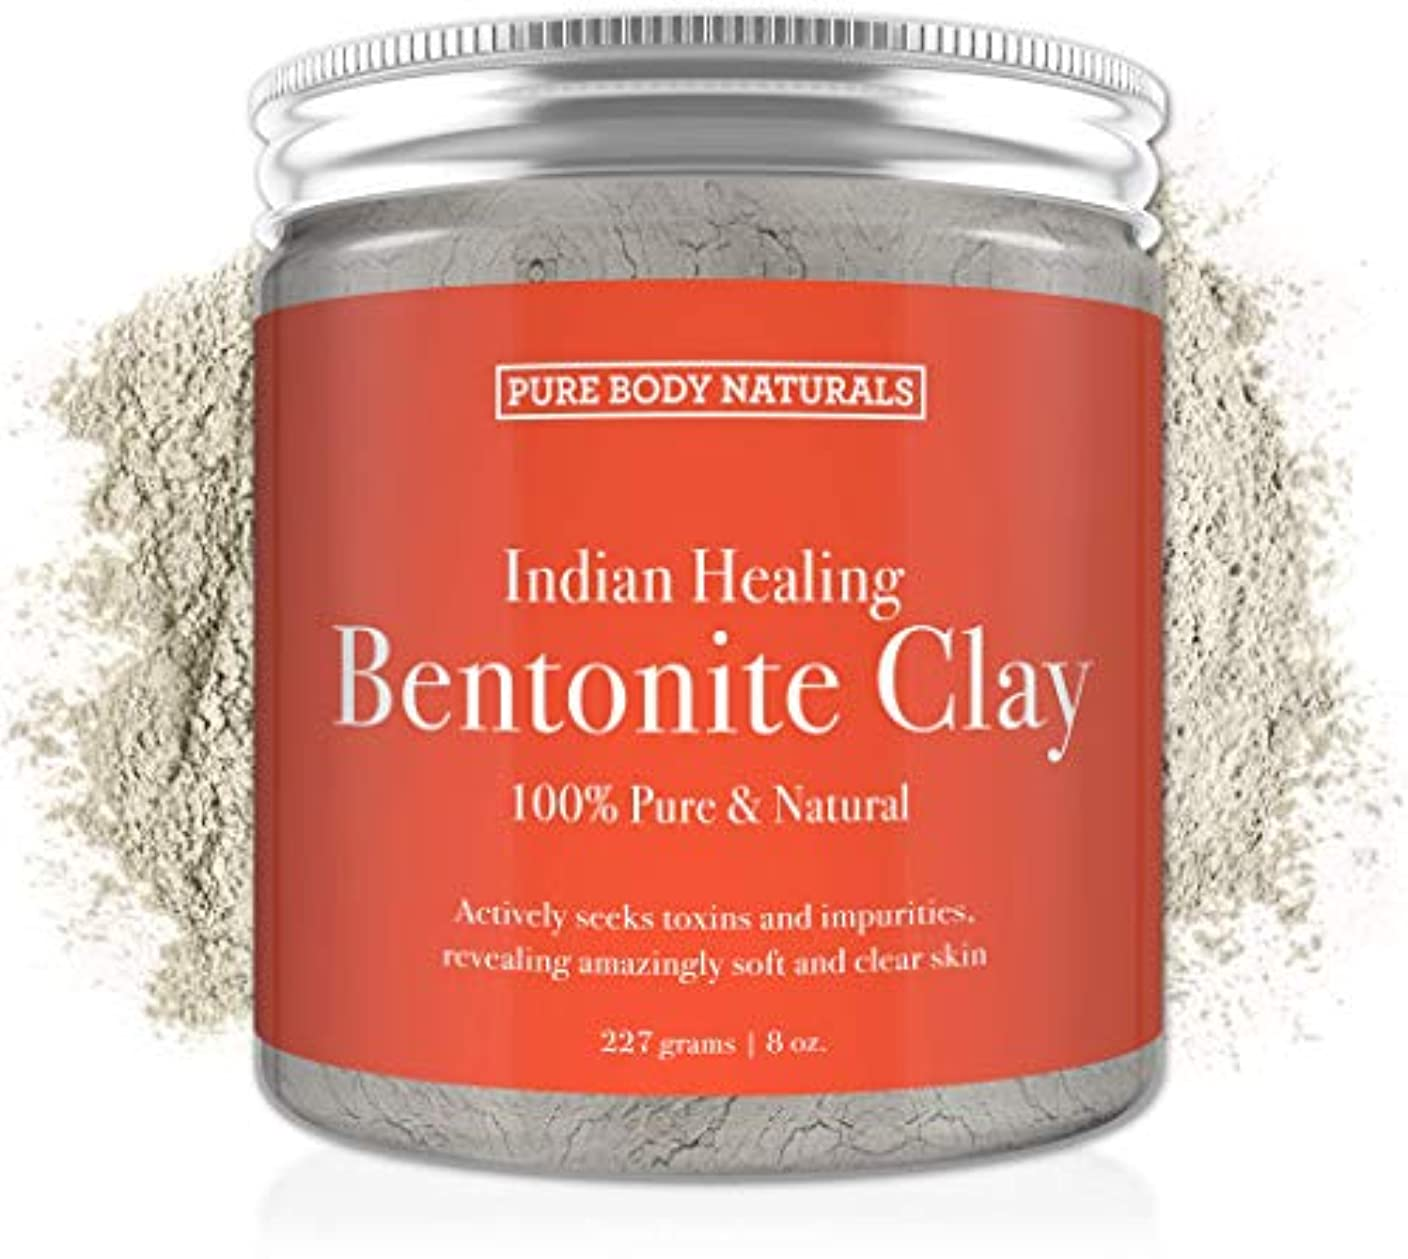 Pure Bentonite Powder for DIY Detox Bath & Face Mask, Pure Indian Healing Clay for Burns, Mastitis, Inflamed or Chapped Skin (8.8 oz) - Pure Body Naturals